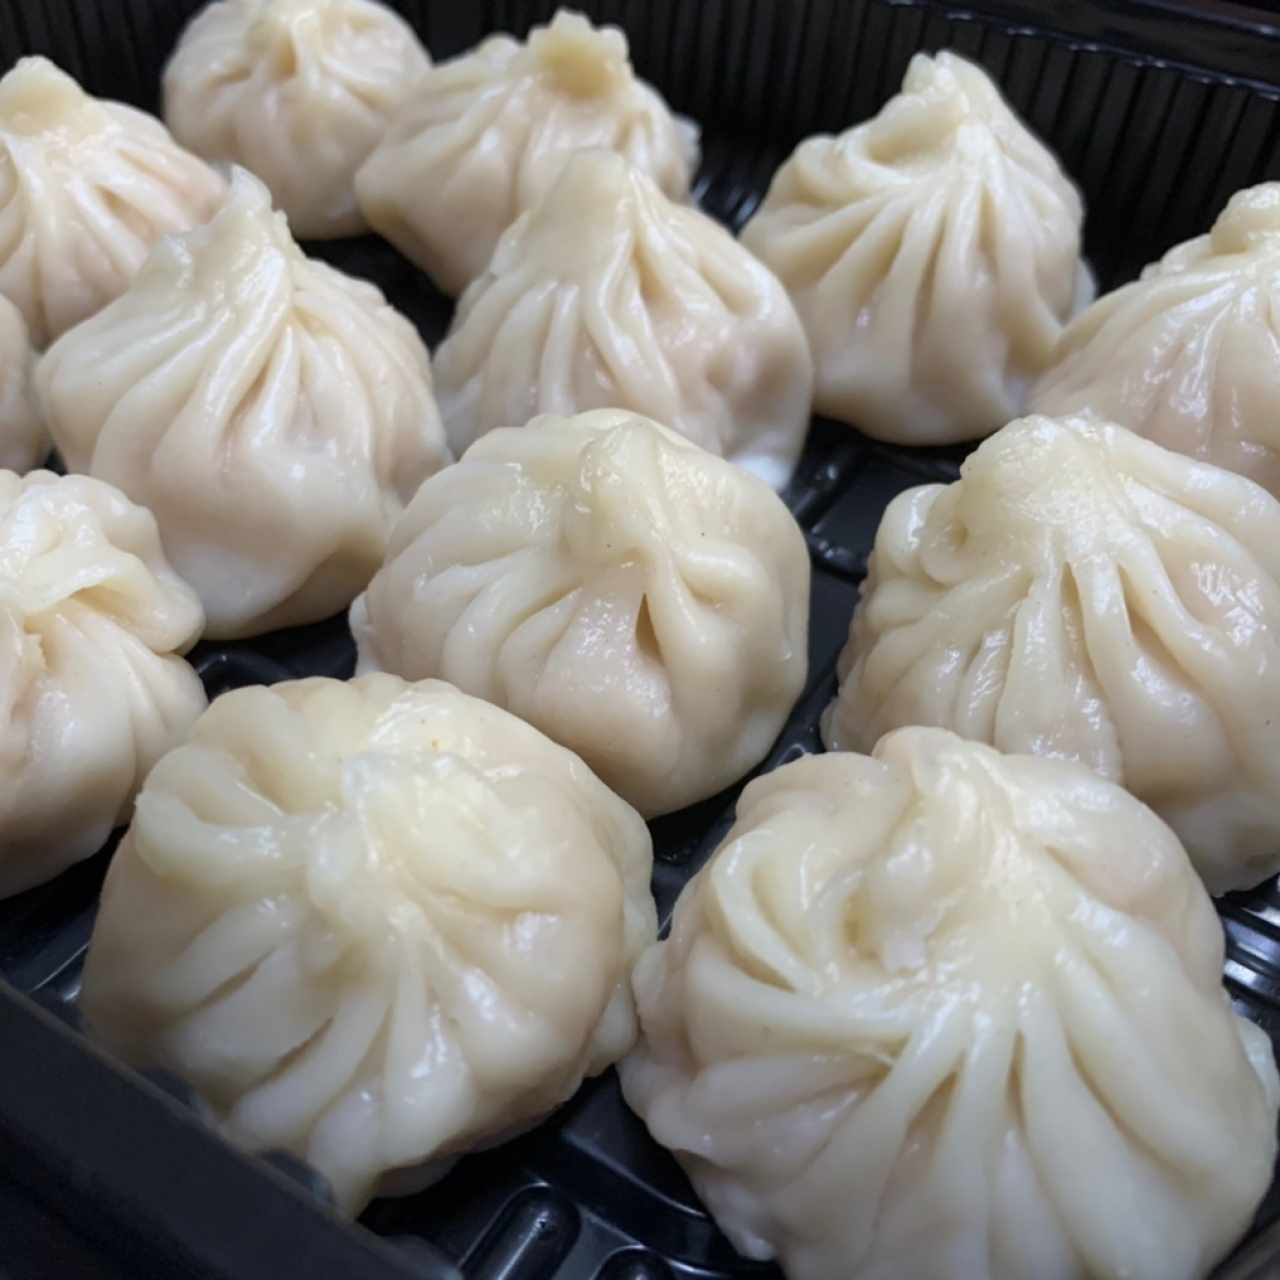 Xia long bao